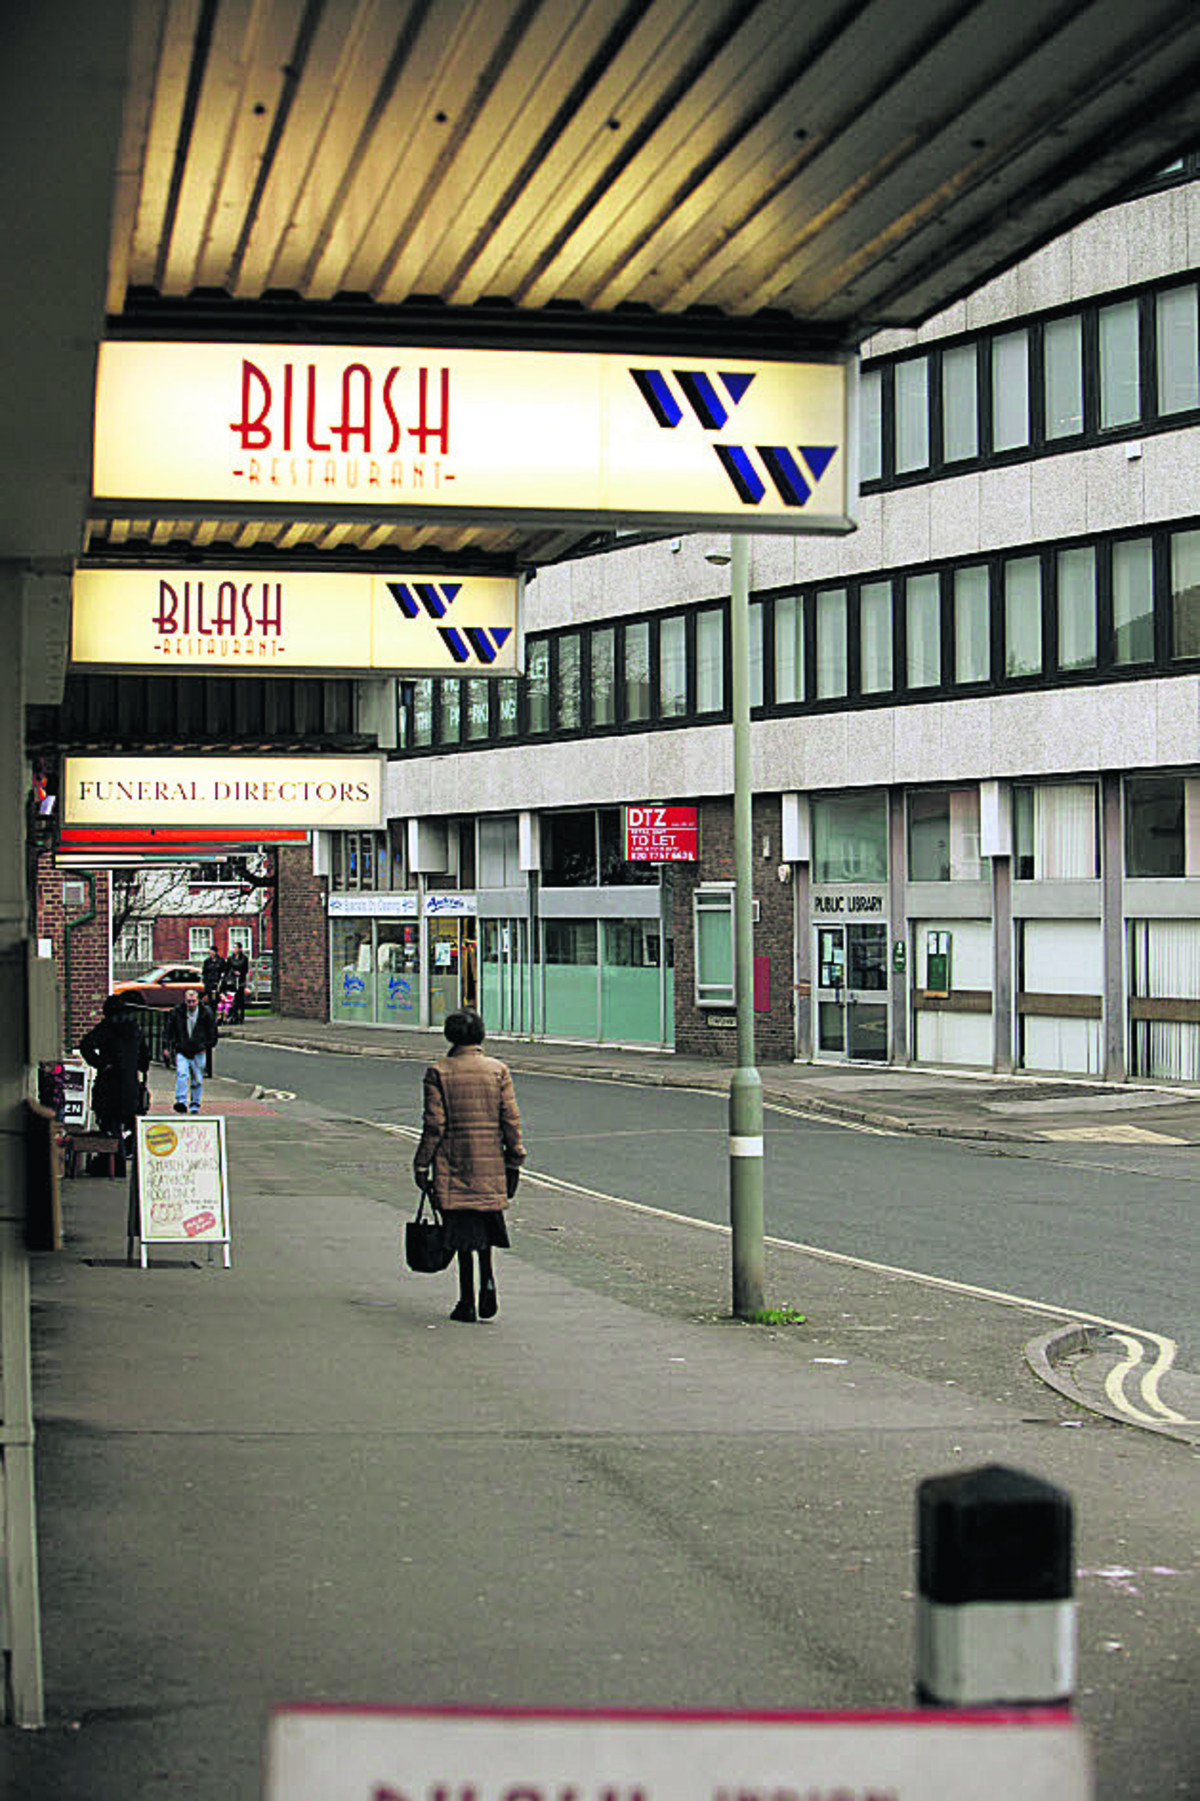 The West Way shopping centre in Botley as it looks now